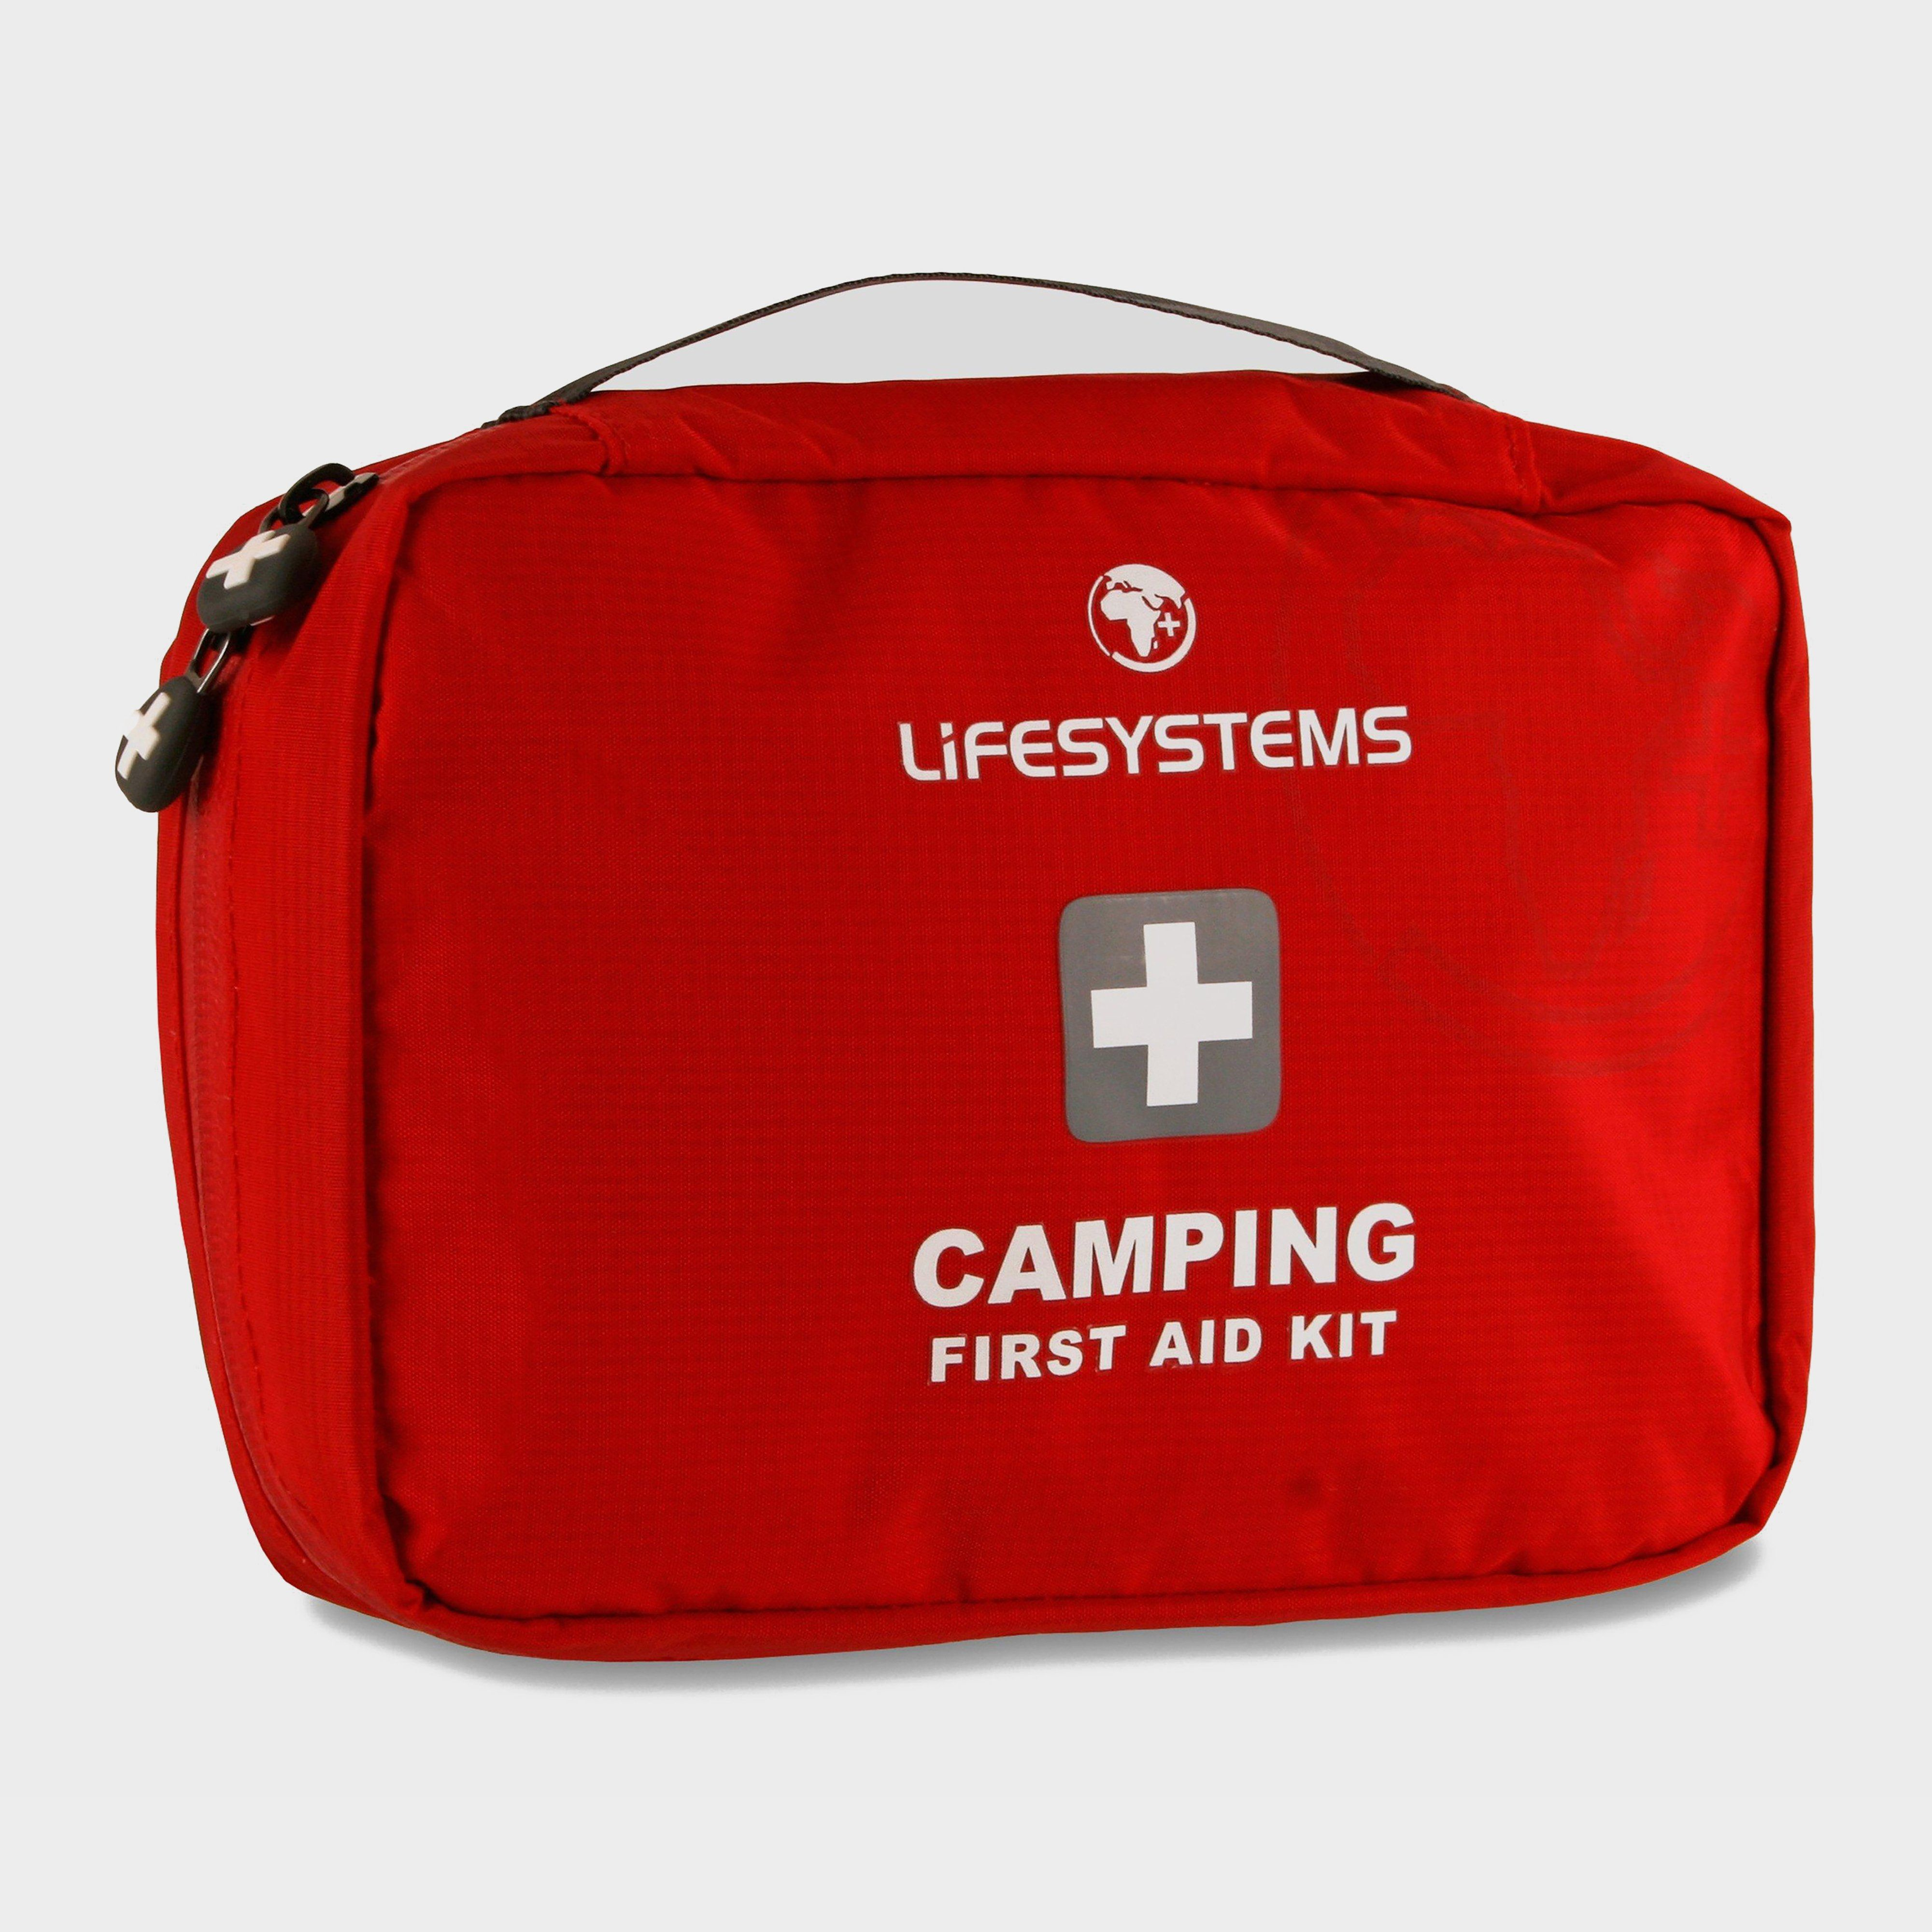 LIFESYSTEMS Camping First Aid Kit - DofE